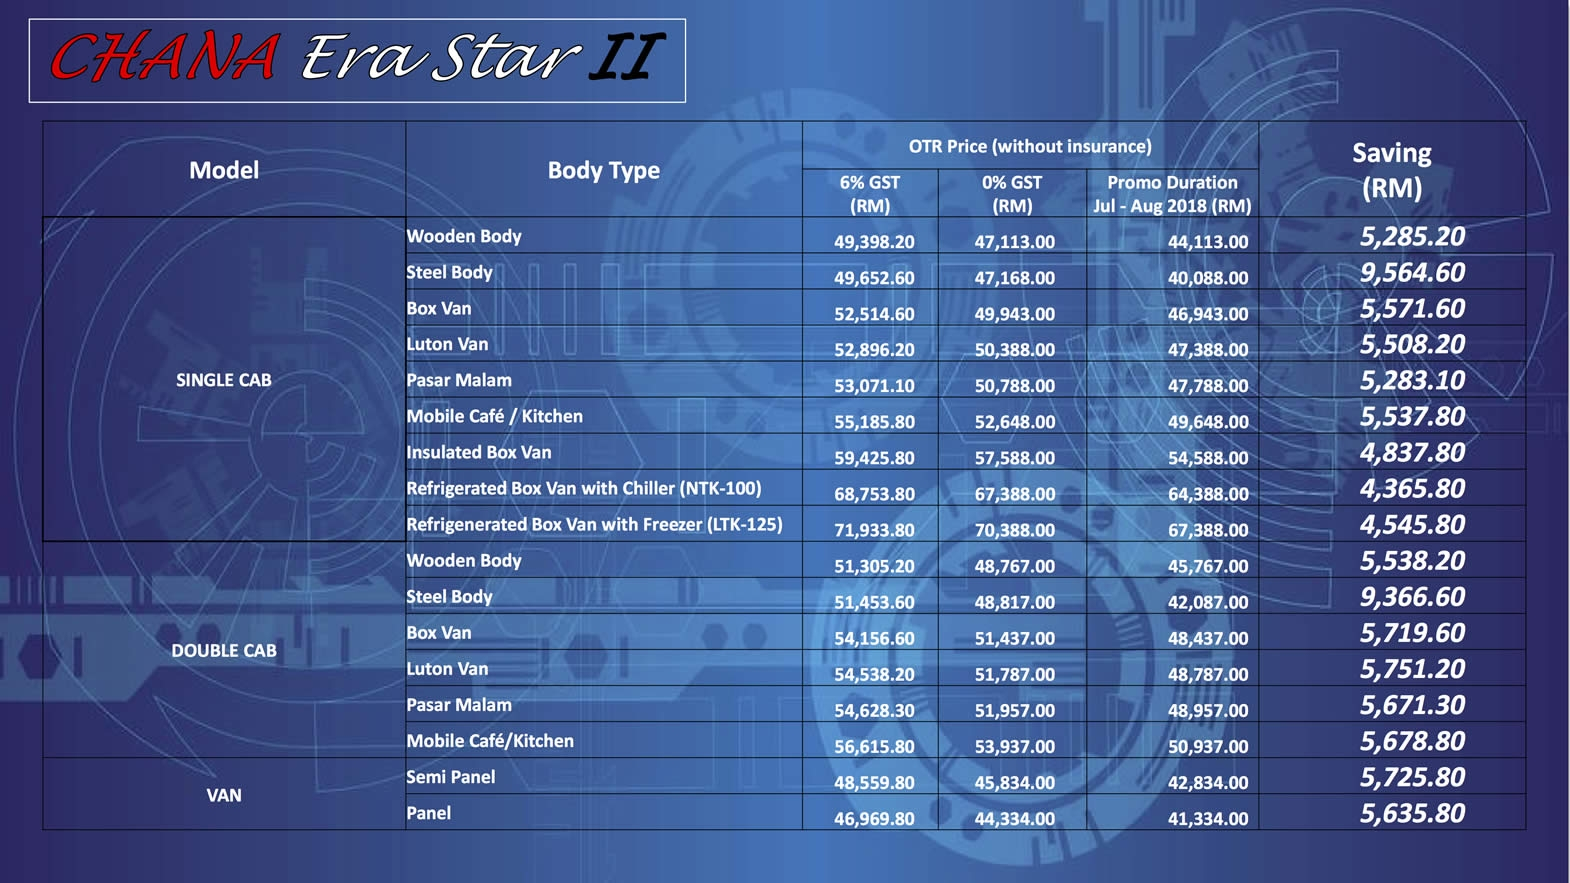 Era Star II Promo Price List